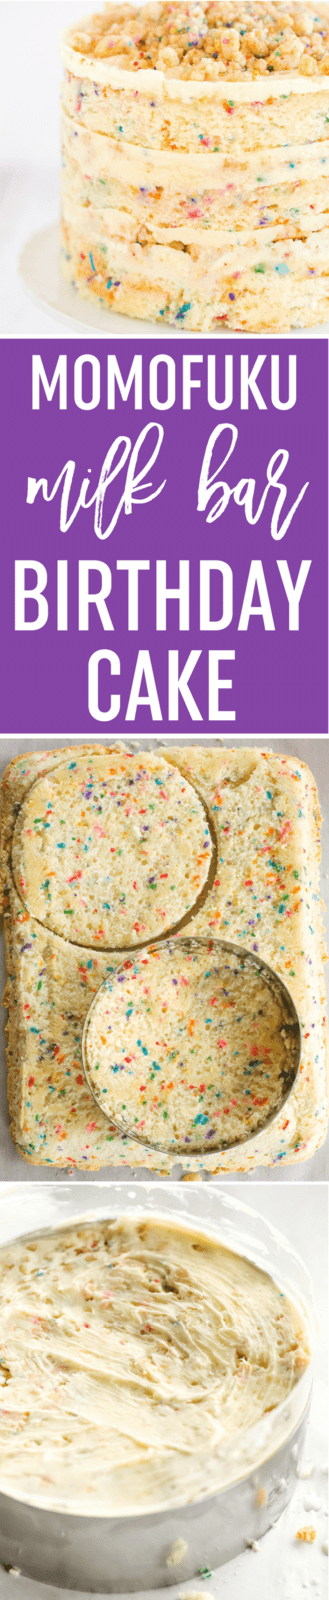 Momofuku Milk Bar Birthday Cake - Layers of funfetti cake loaded with sprinkles, vanilla frosting, and birthday cake crumbs! Make it for your favorite person!